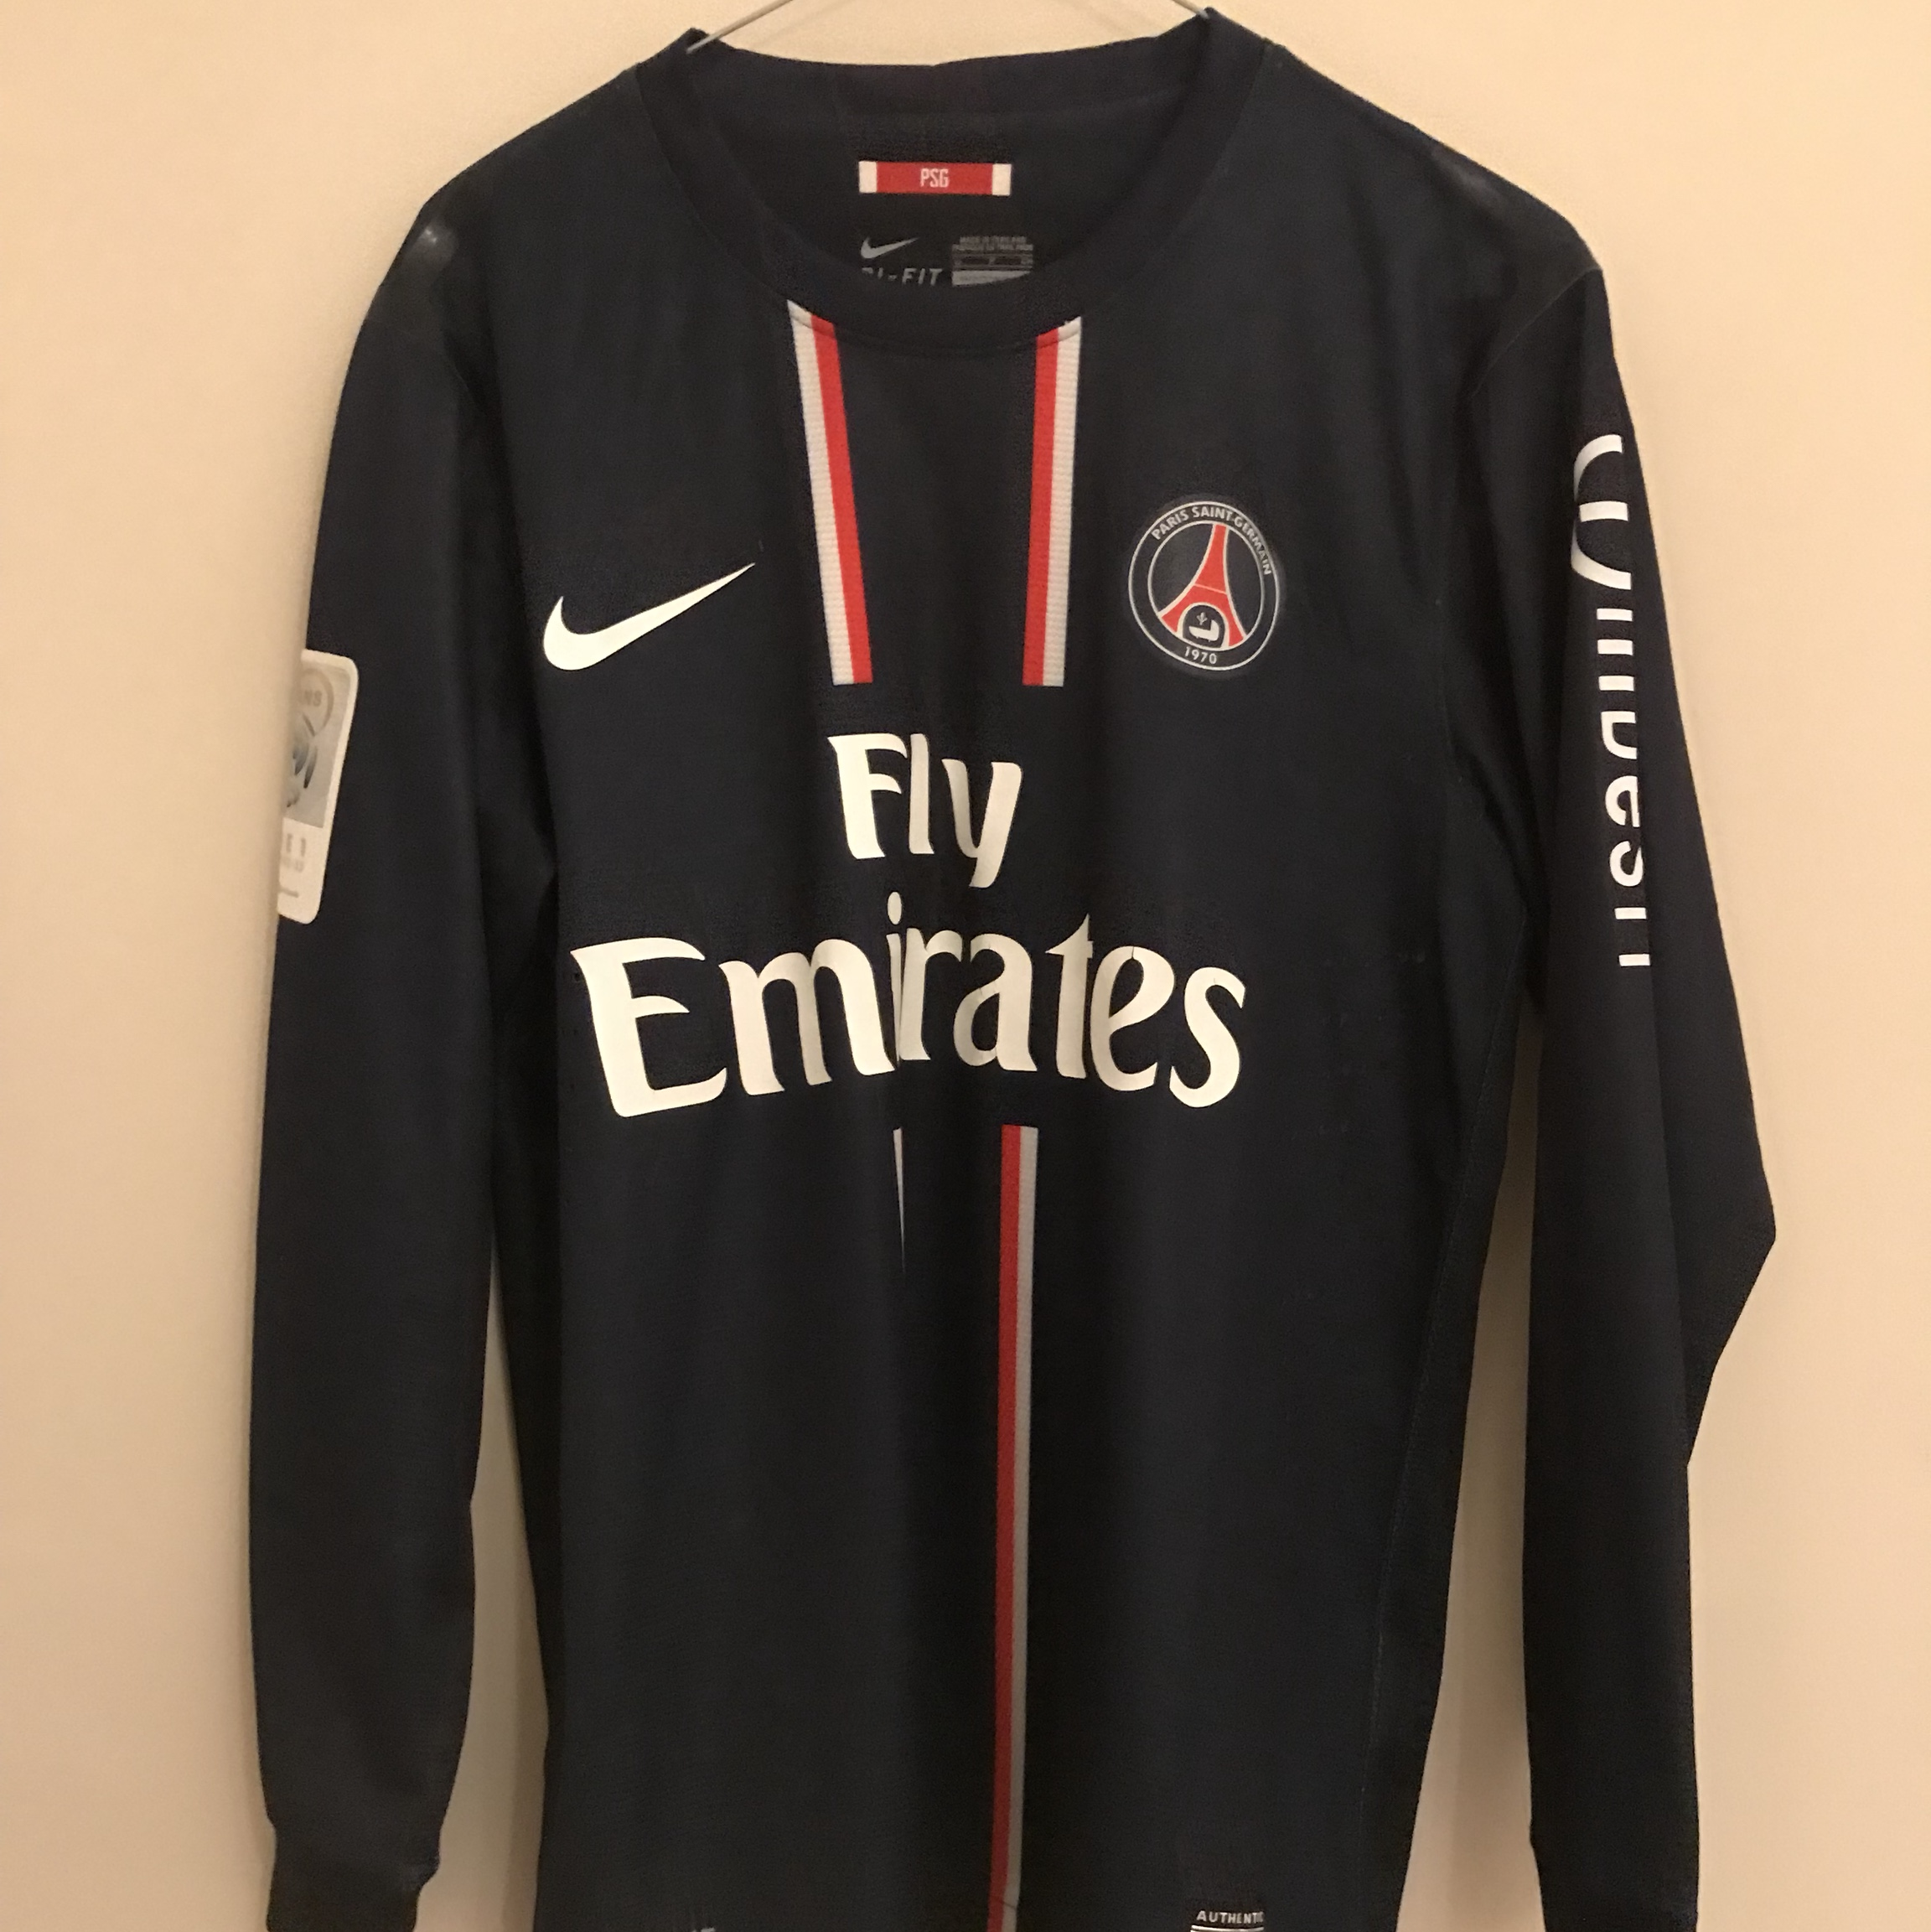 new product d2486 d4df0 Match Issue David Beckham PSG 2012/13 Jersey. - Depop